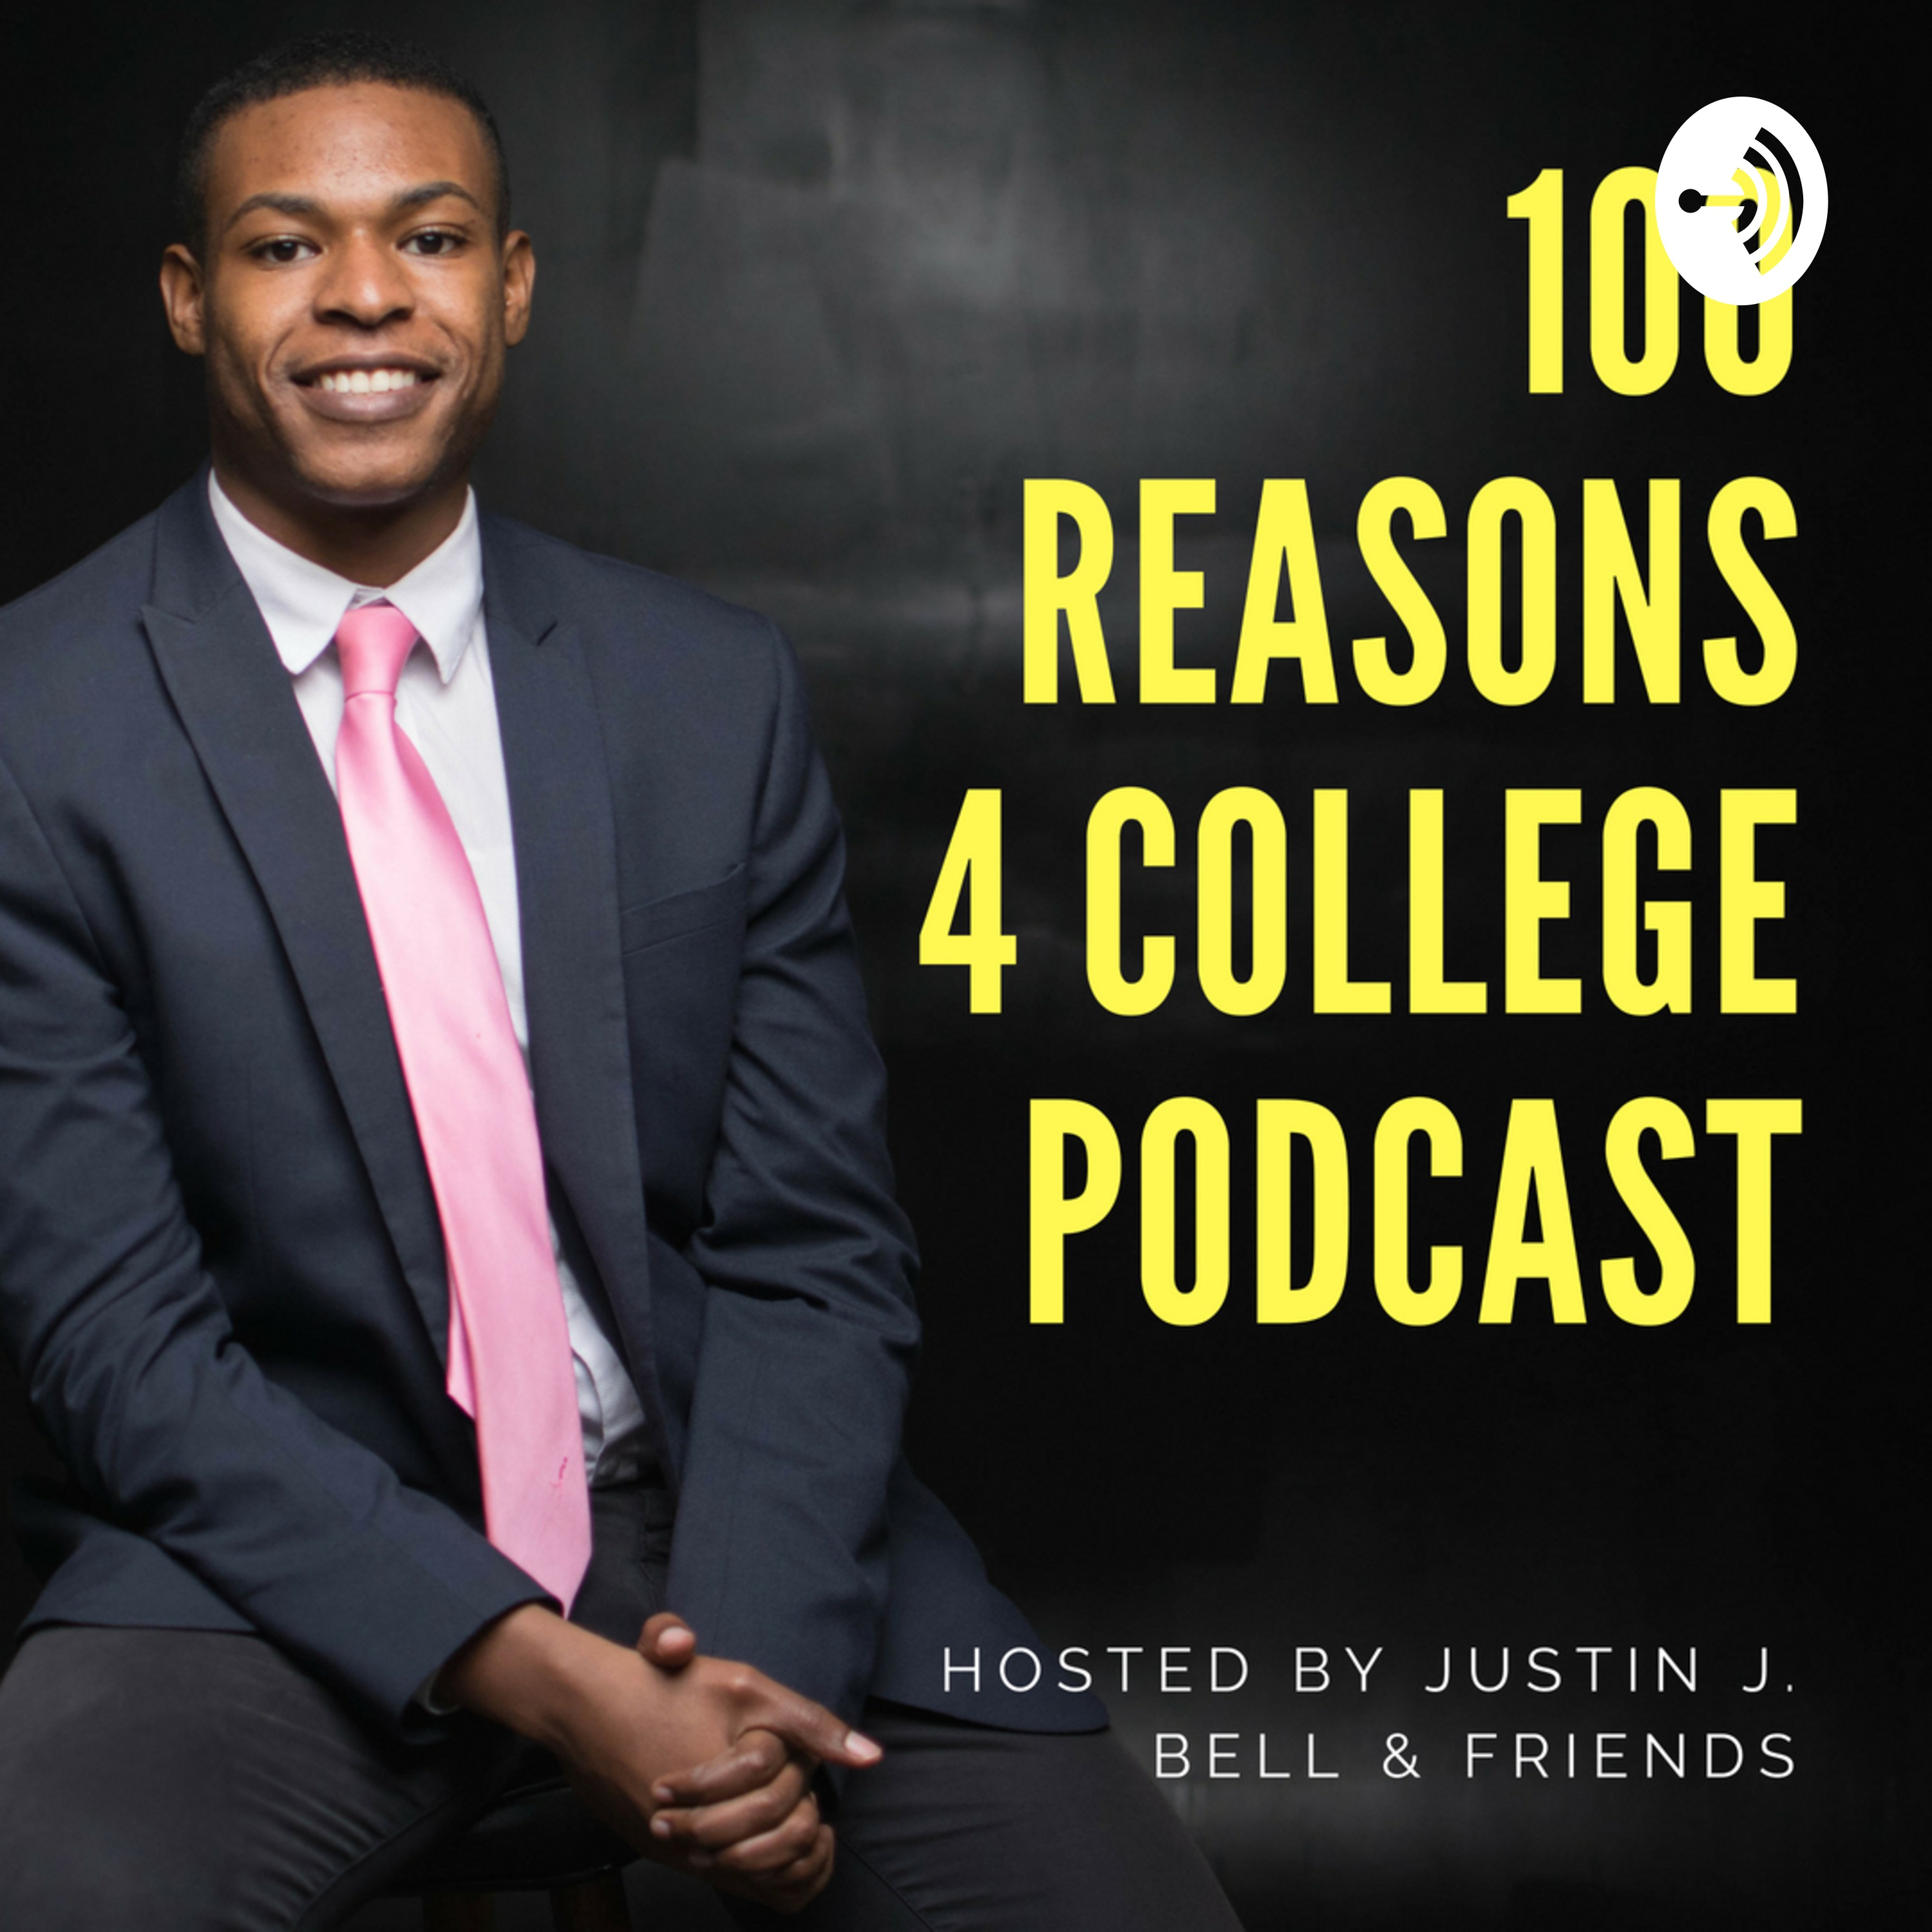 100 Reasons 4 College Podcast | Listen via Stitcher for Podcasts